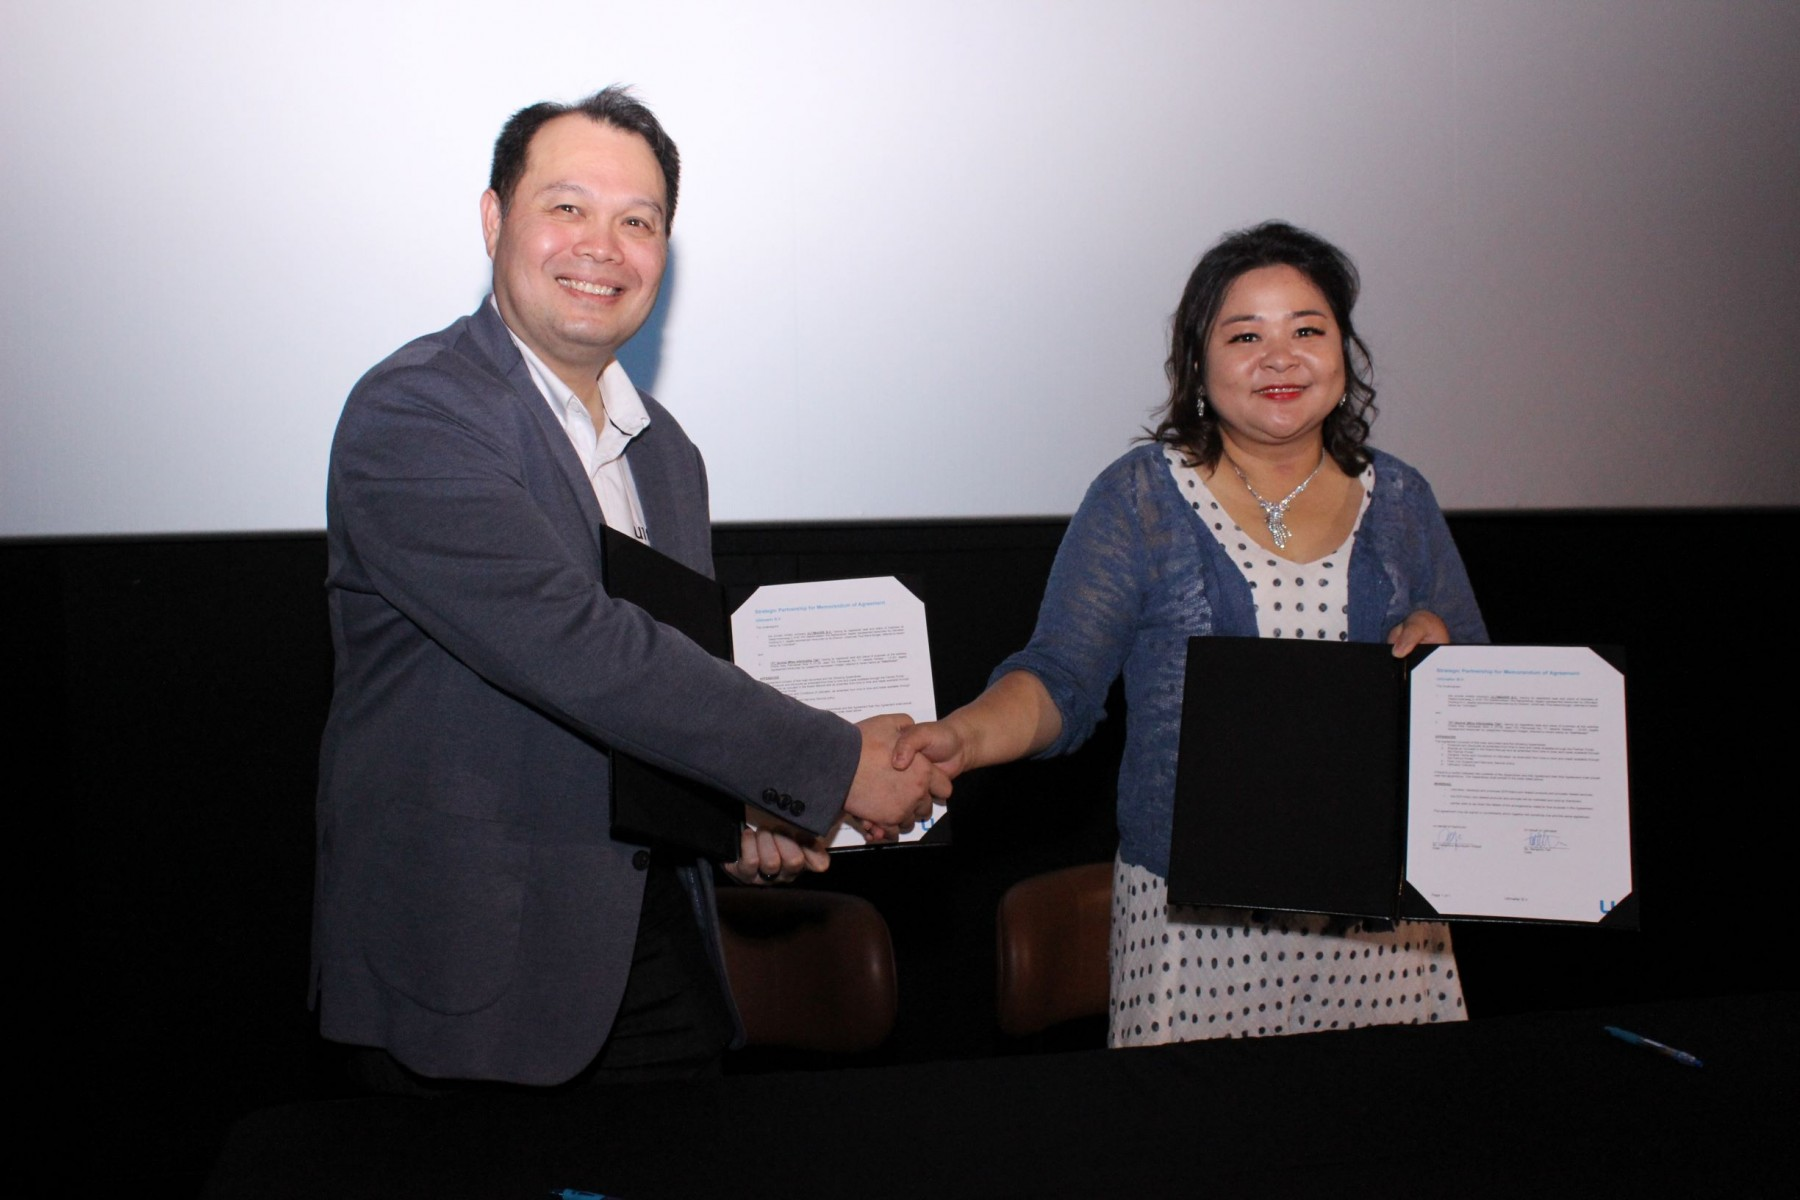 Signing ceremony between Benjamin Tan VP of Ultimaker APAC and Mrs Josephine Handayani Hidajat President Director of PT Sentral Mitra Informatika Tbk